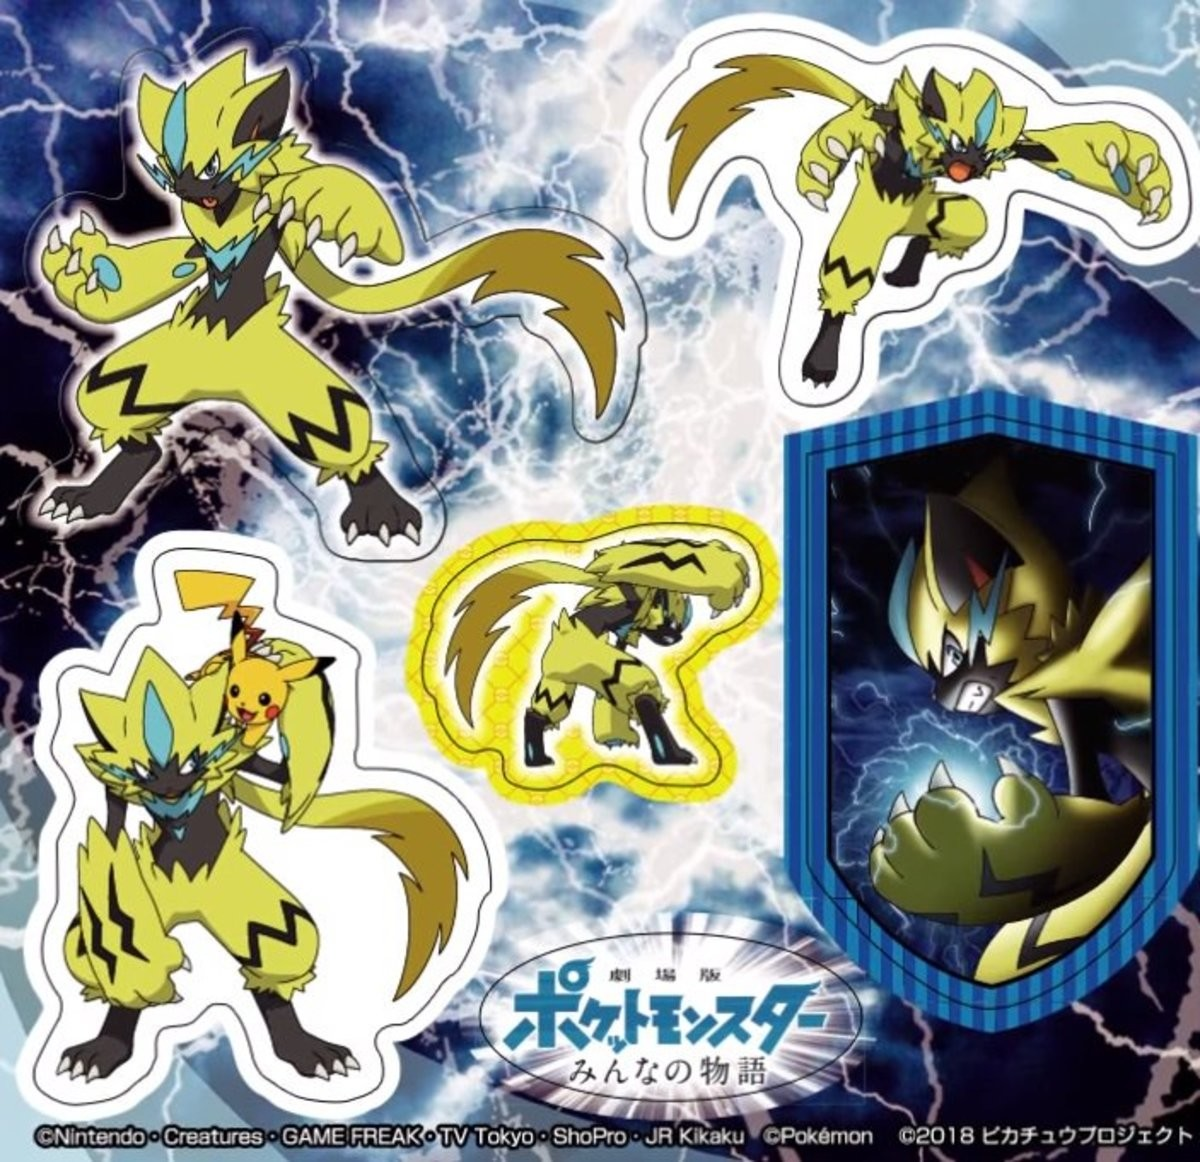 Zeraora is Pikachu's buddy. . I xi. I don't like mystical pokemon in general. But Zeraora is just stupid. It looks like the retarded lovechild of Zoruark, Lucario, and a Luxray was made into a fur